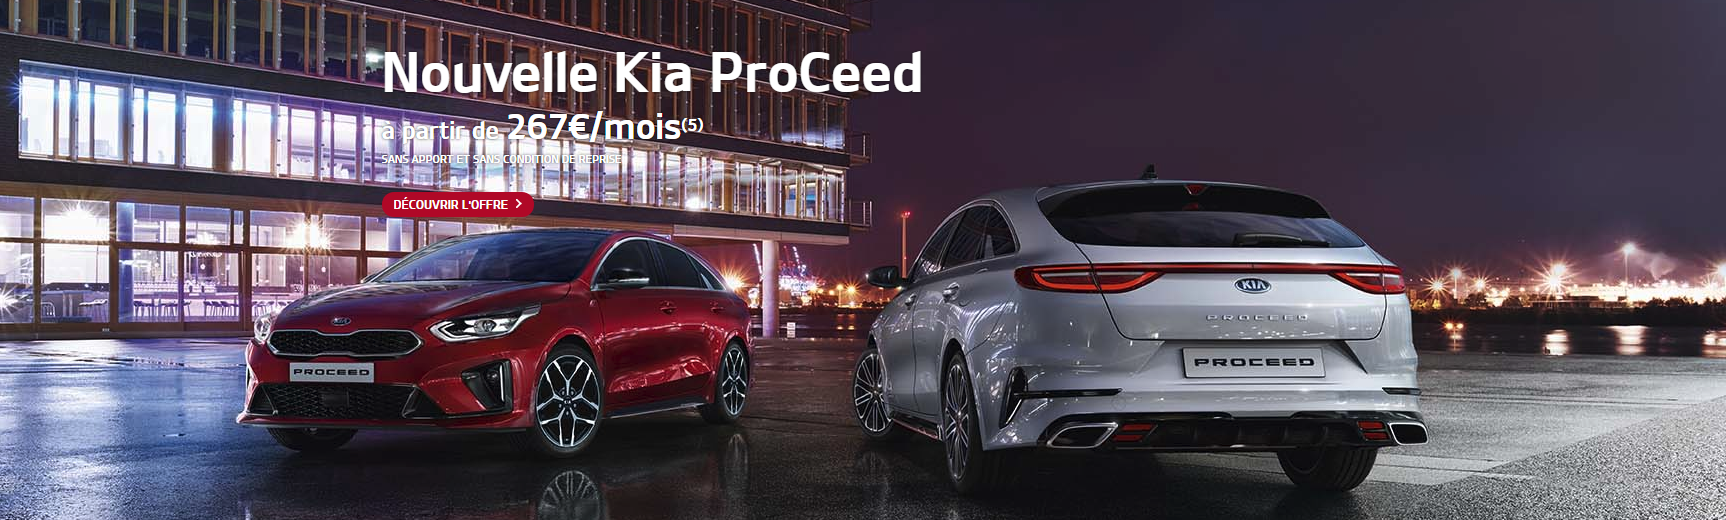 Kia Proceed offre comm